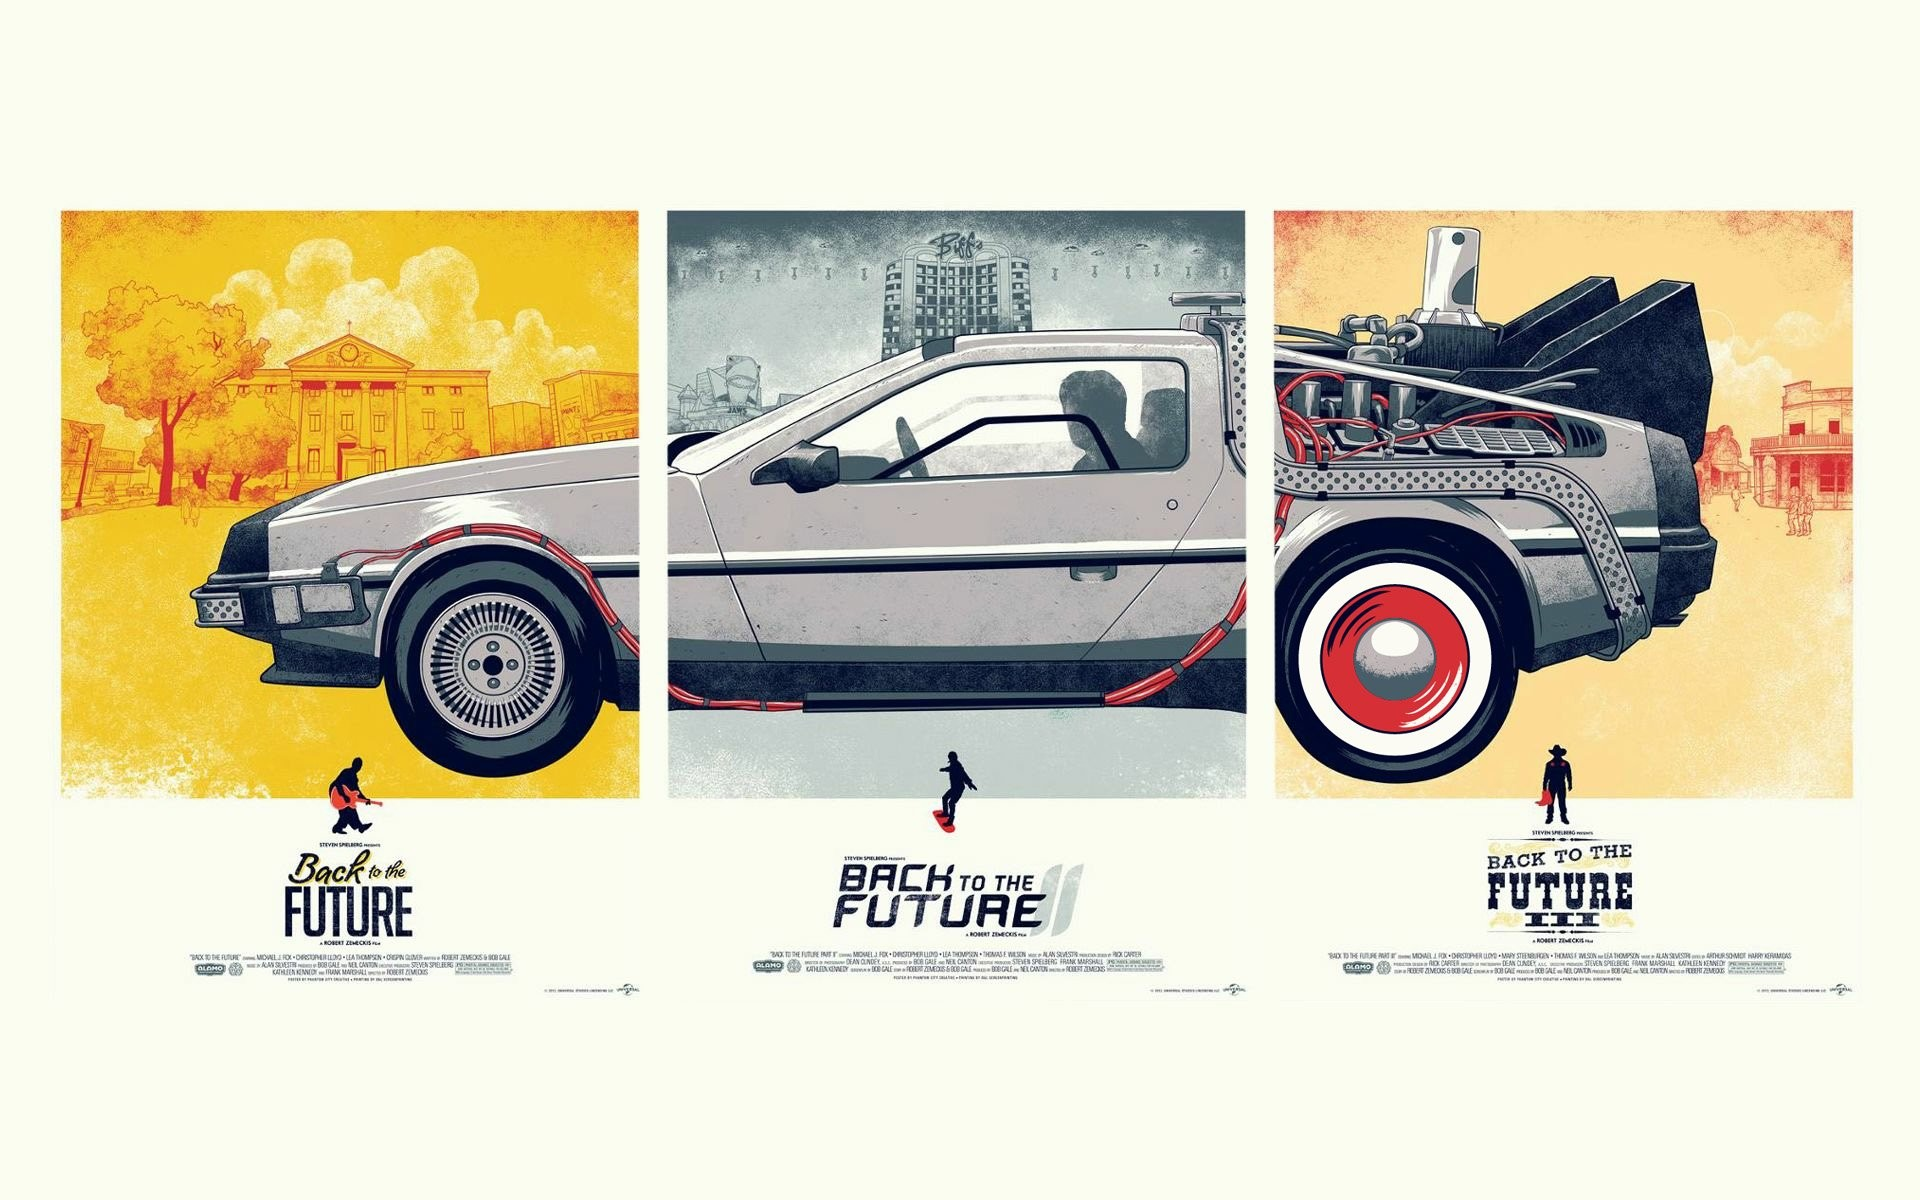 1920x1200 Back To The Future DeLorean Machine The Others · HD Wallpaper | Background ID